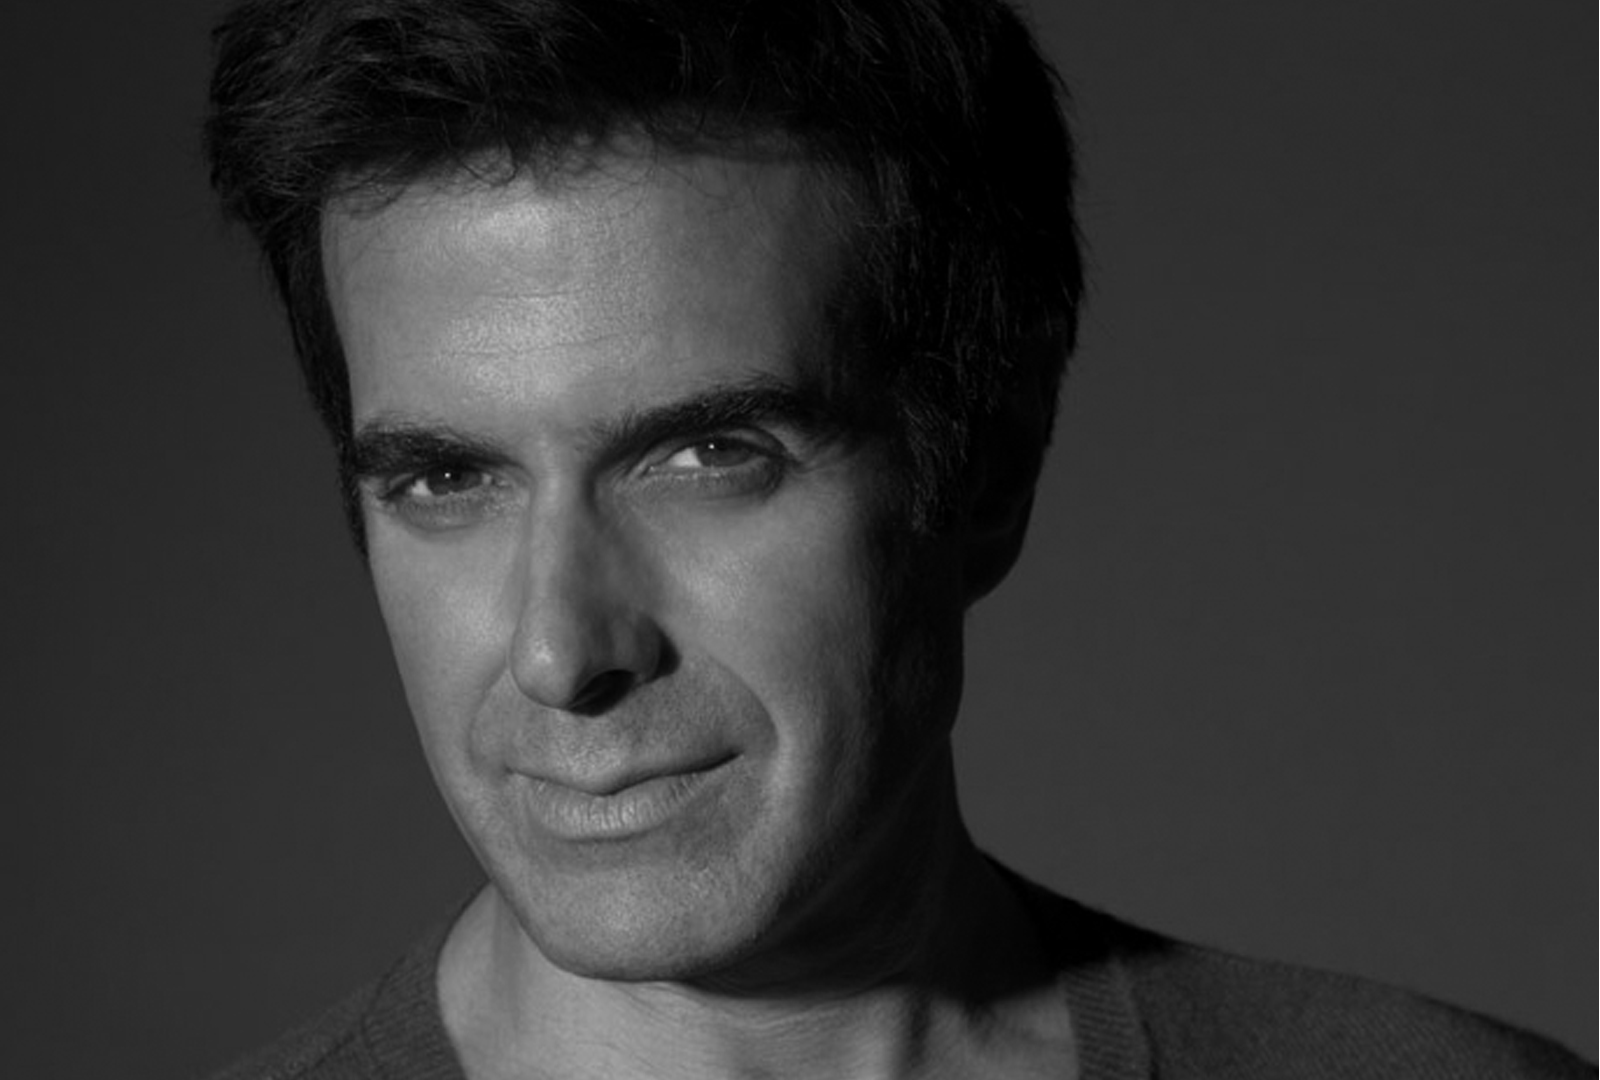 david copperfield Official website of illusionist david copperfield with tour information, videos, biography, and more.